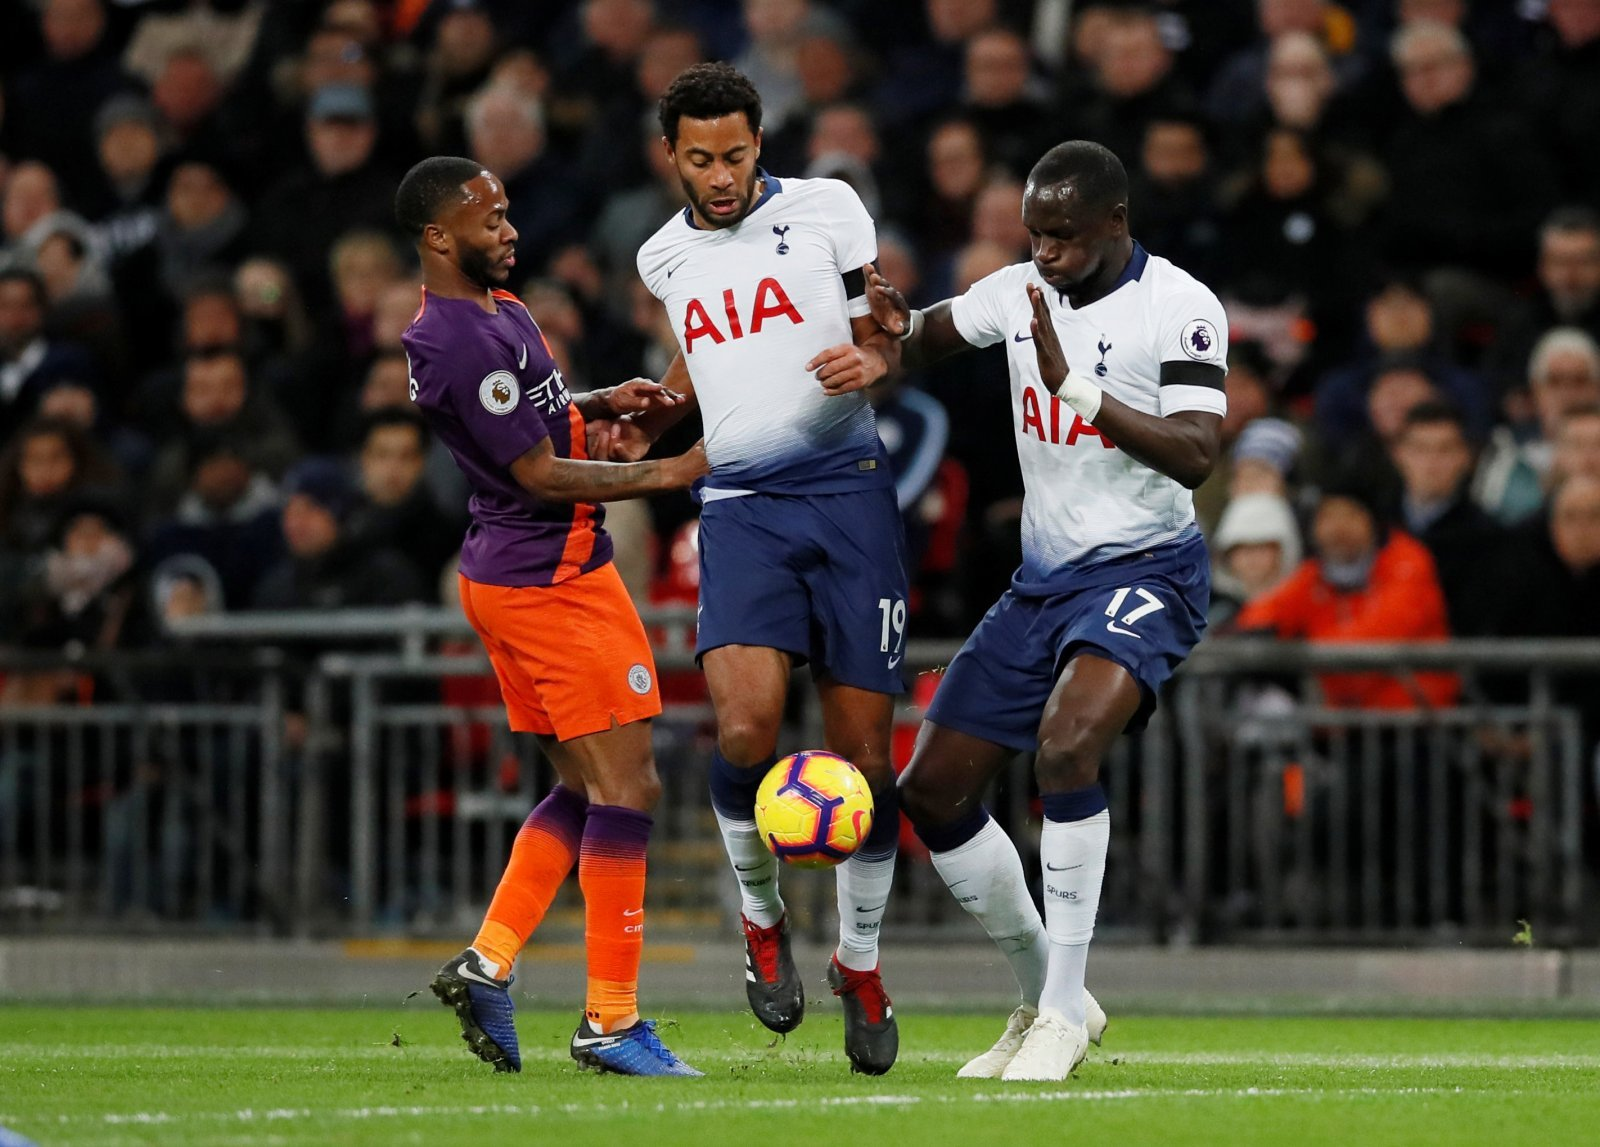 Tottenham fans take to Twitter to delight at Sissoko's timely return